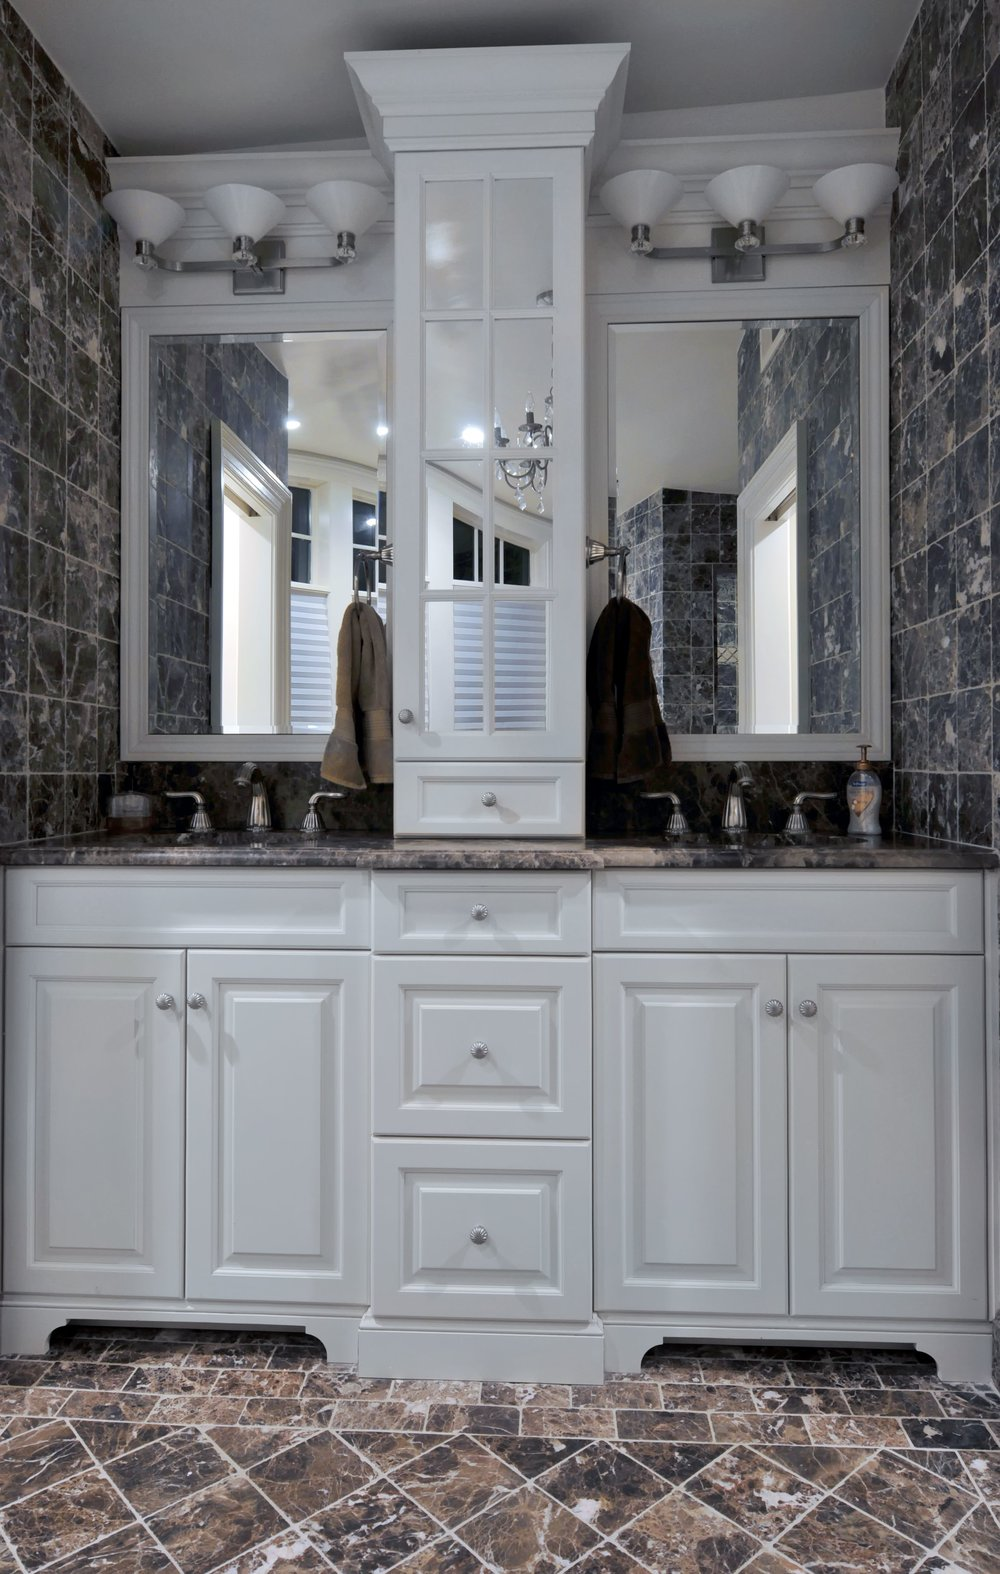 Bathroom with dark tie and double sinks with mirrors above